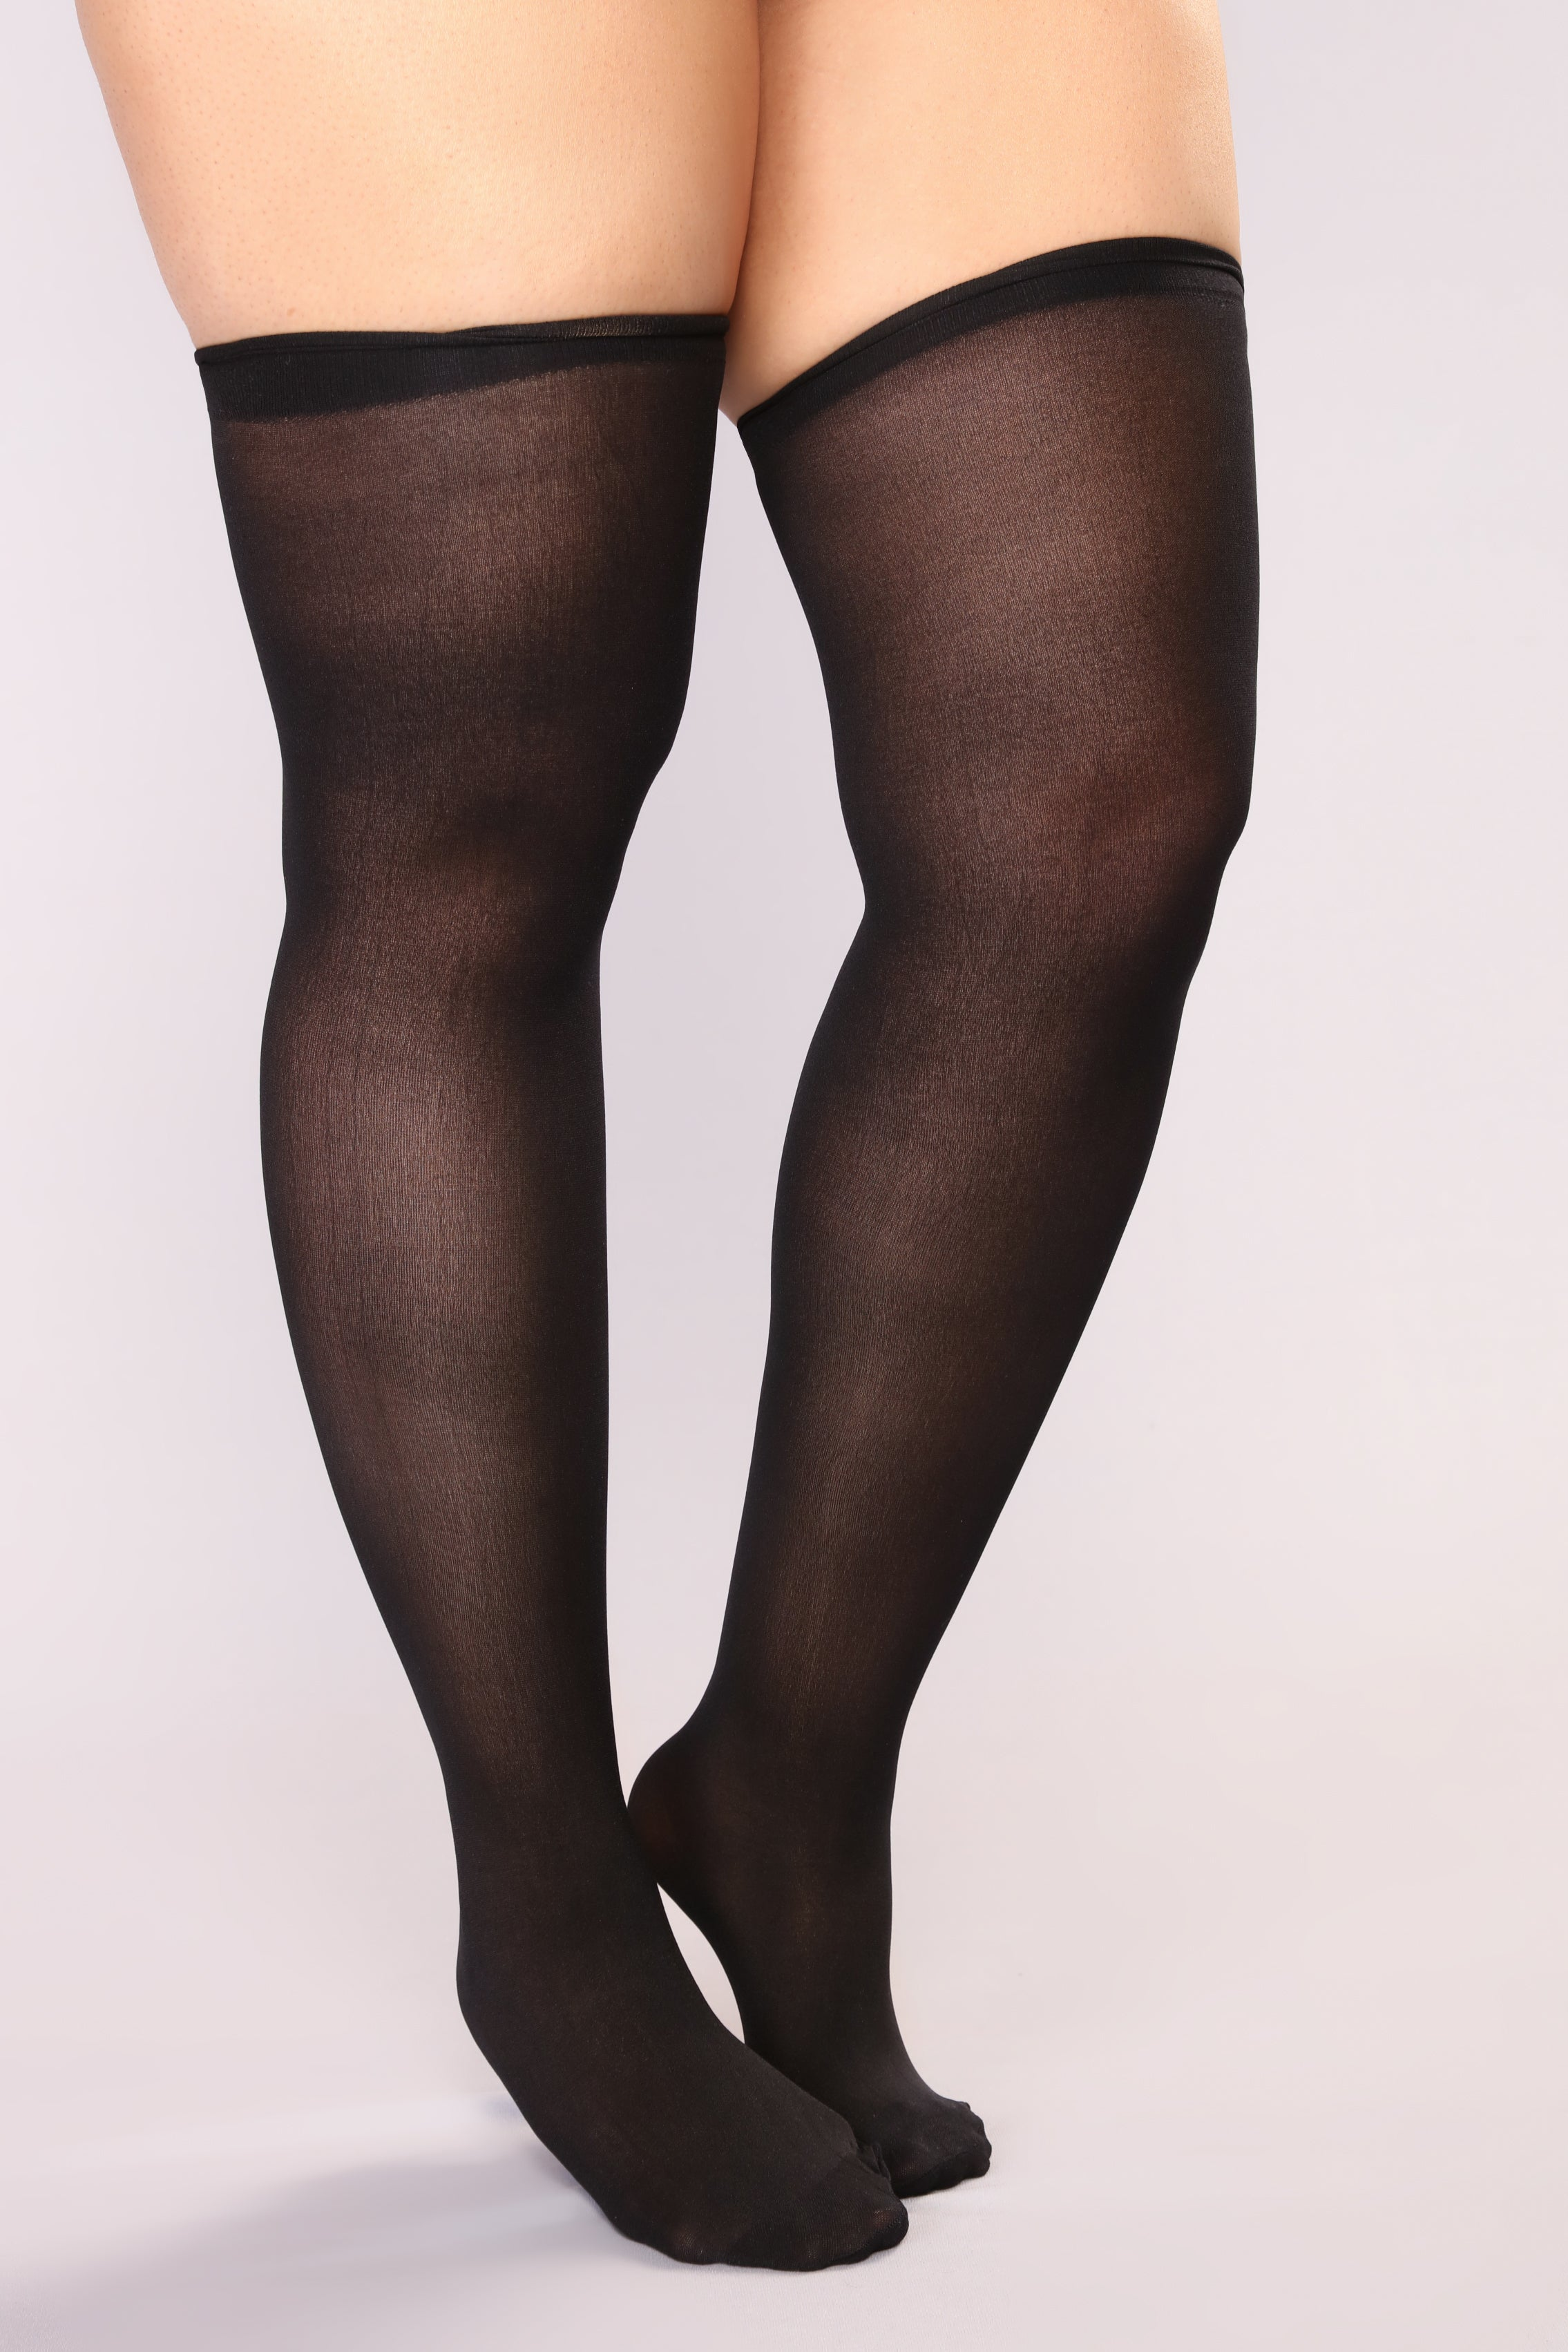 d886c1df70c Feel Your Way Thigh High Stockings - Black